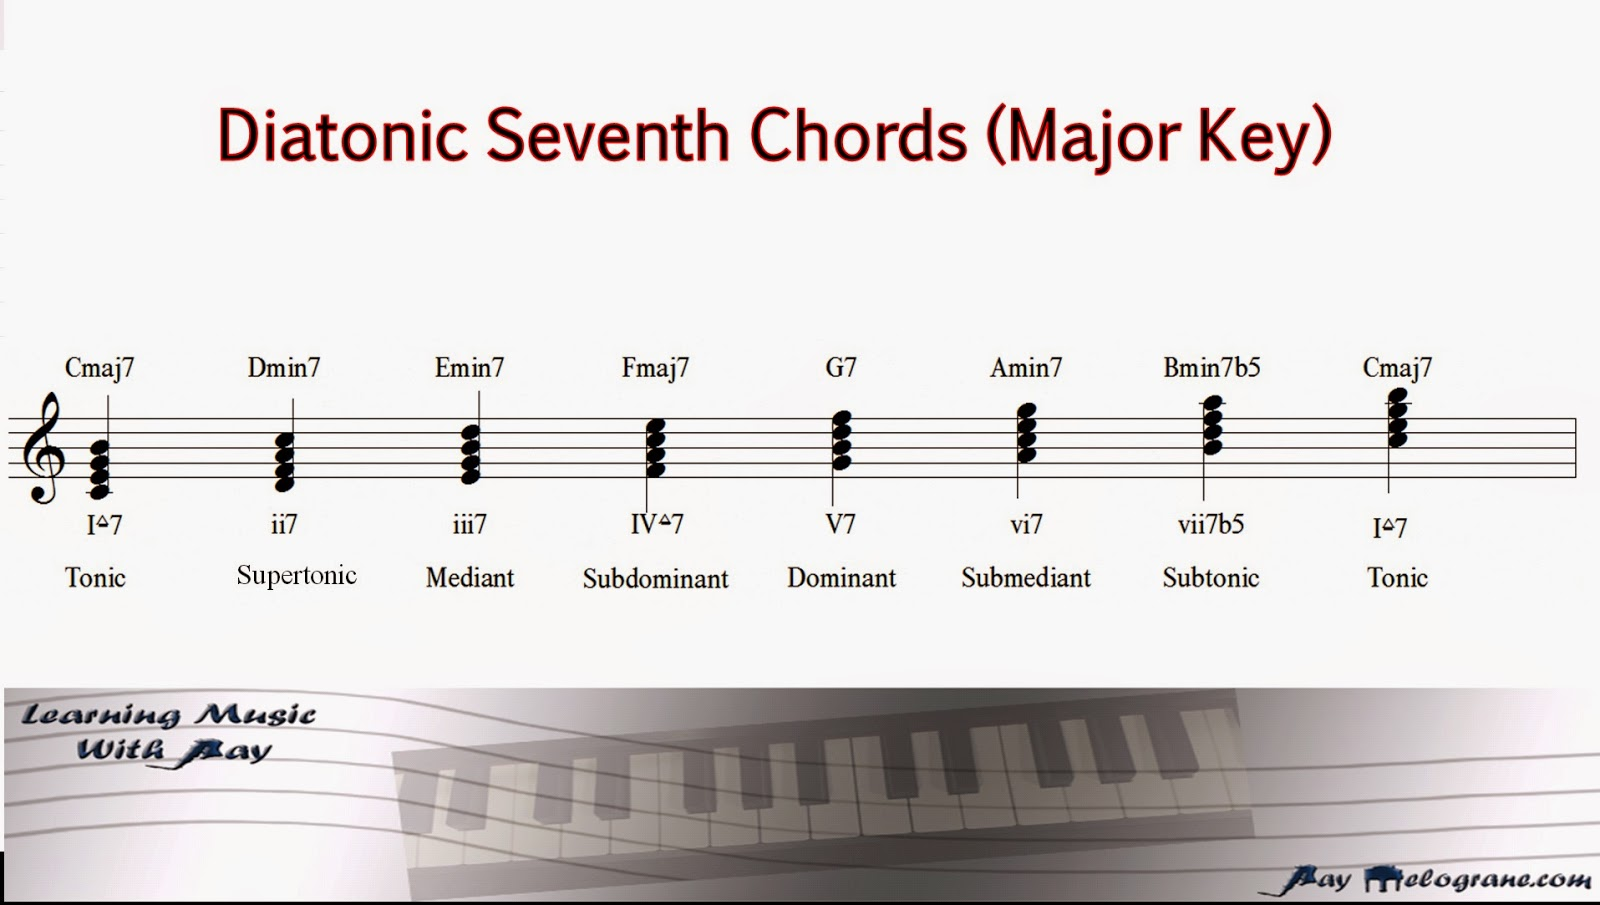 Learning Music With Ray Blog Chord Progressions